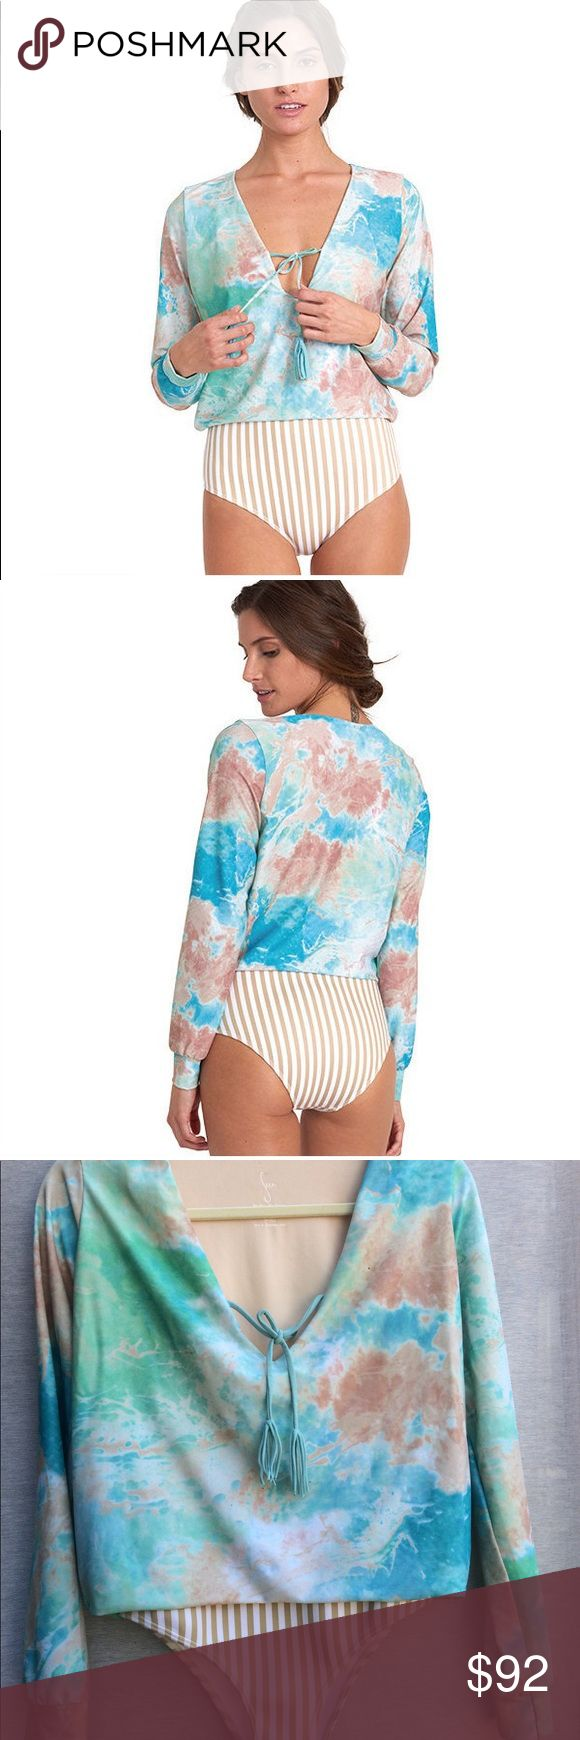 Seea Santander Surf Suit in Marble sz Small Seea Santander surf suit in marble size small, C skin lining perfect for surfing and lounging, worn twice surfing, very light sand price reflected. Please ask any questions before purchasing! acacia swimwear Swim One Pieces